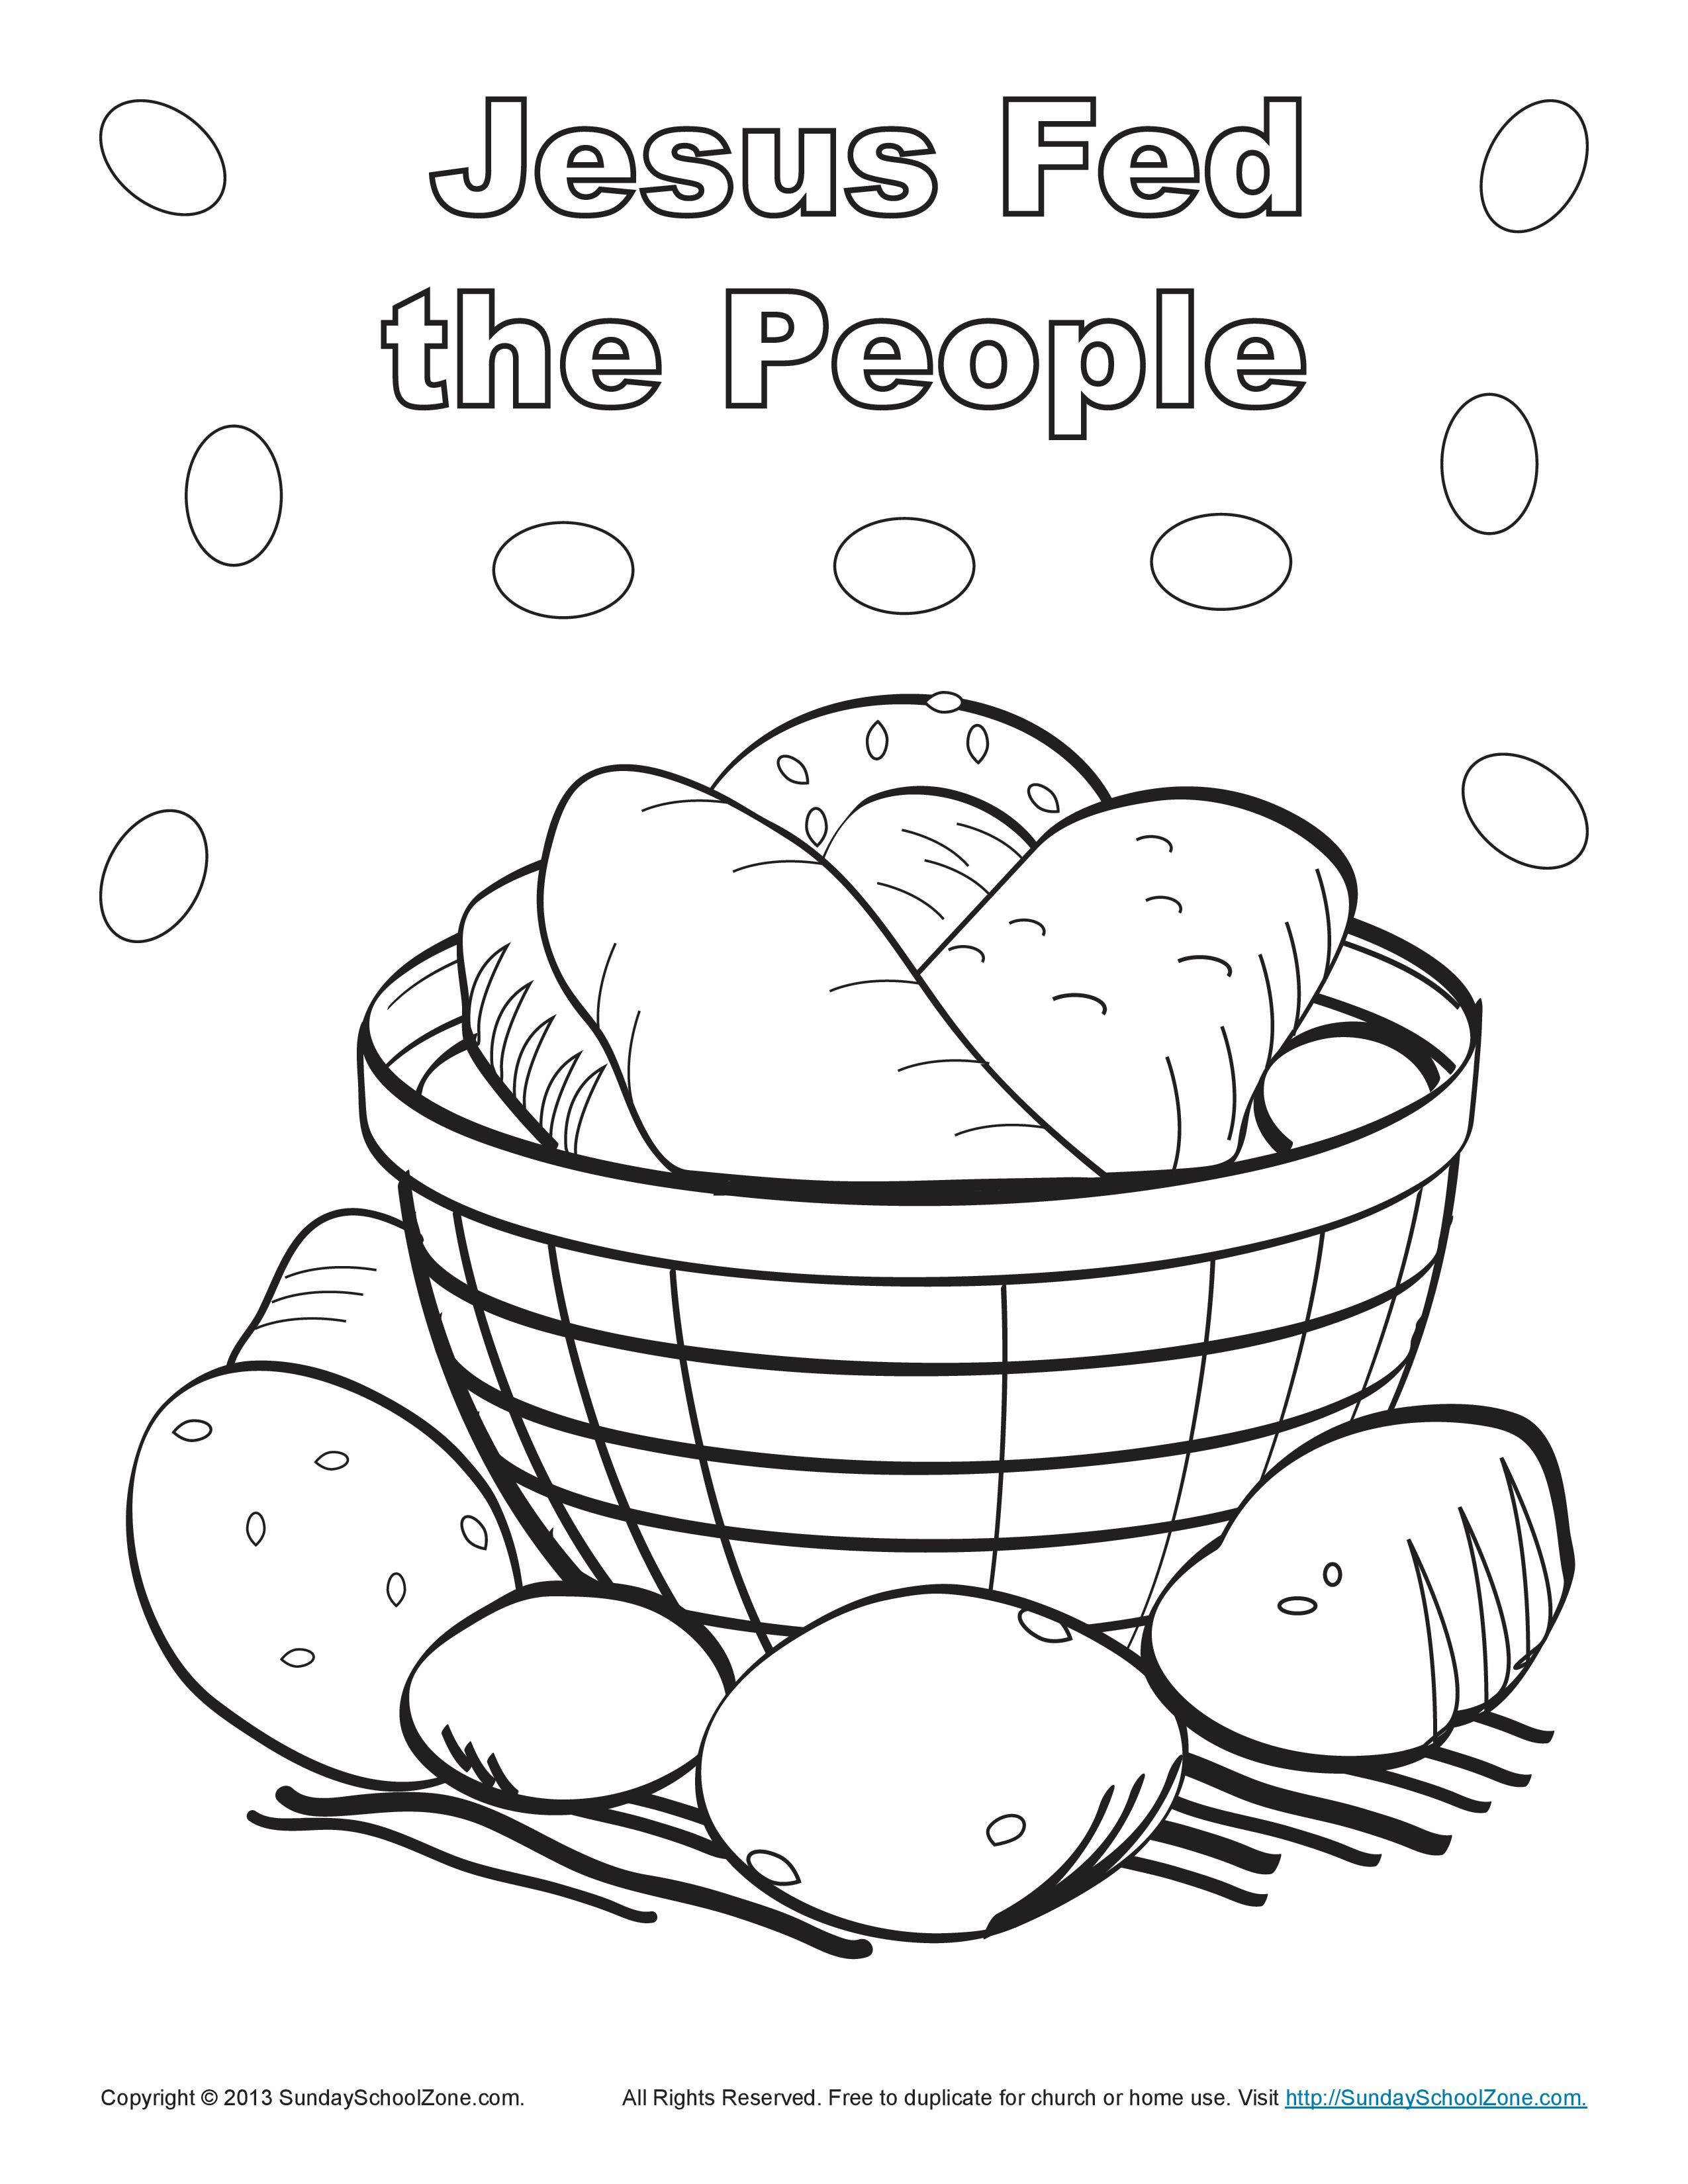 Jesus Fed The People Bible Coloring Page